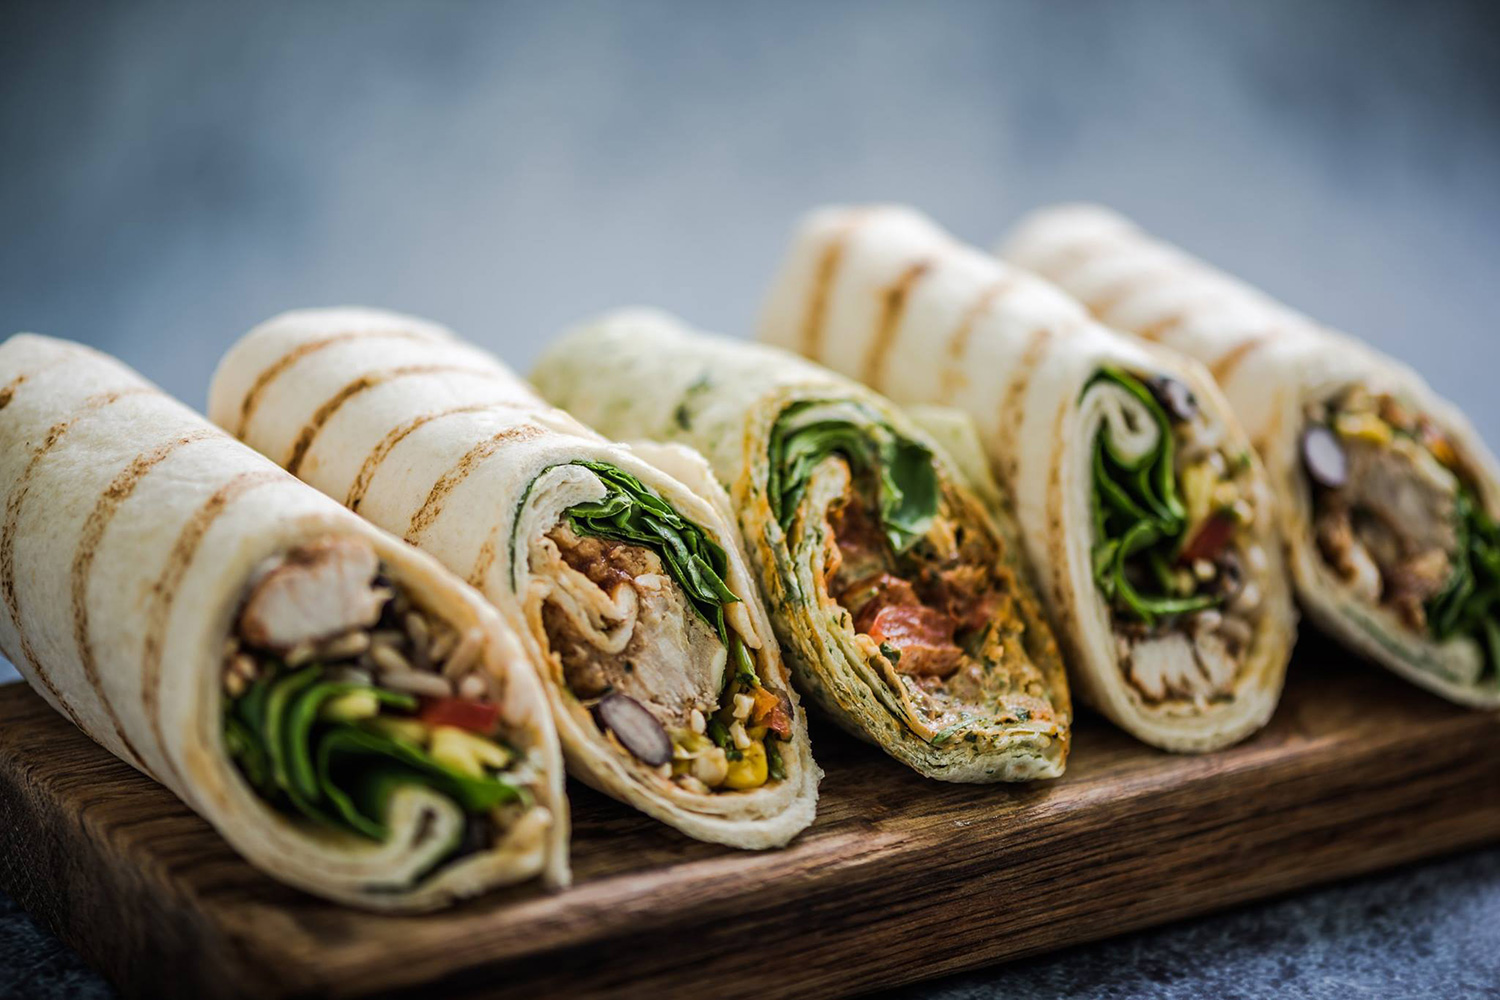 En Do Eat! tienen wraps fríos y calientes. ¡Intenta no comértelos de un bocado! (Foto: Do Eat!)